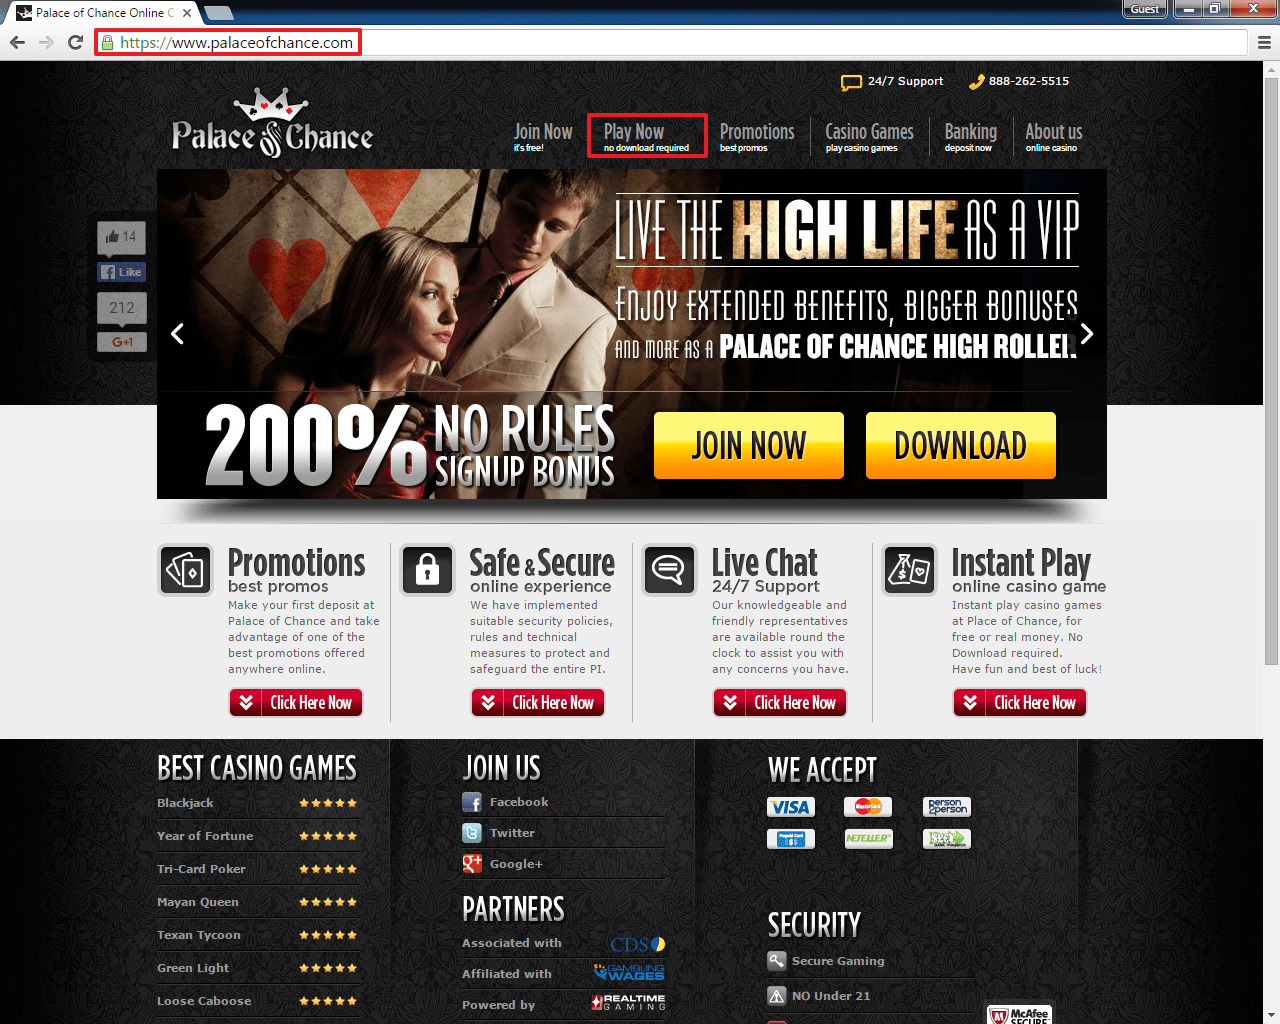 palace of chance online casino instant play